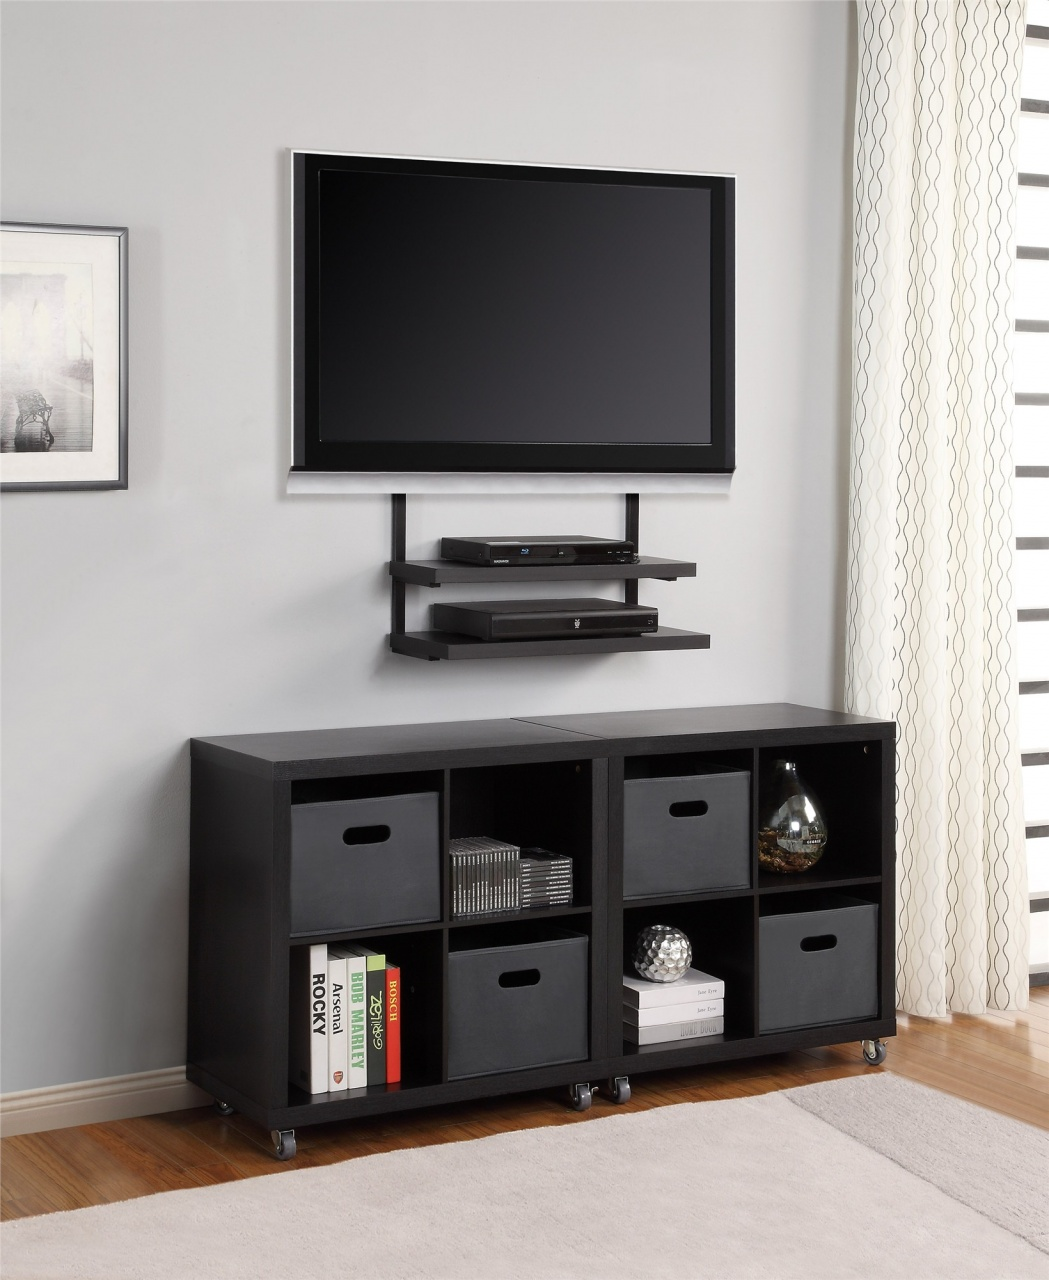 Fireplace Wall Unit New Wall Mounting Tv Over Fireplace Vivo Unit Entertainment